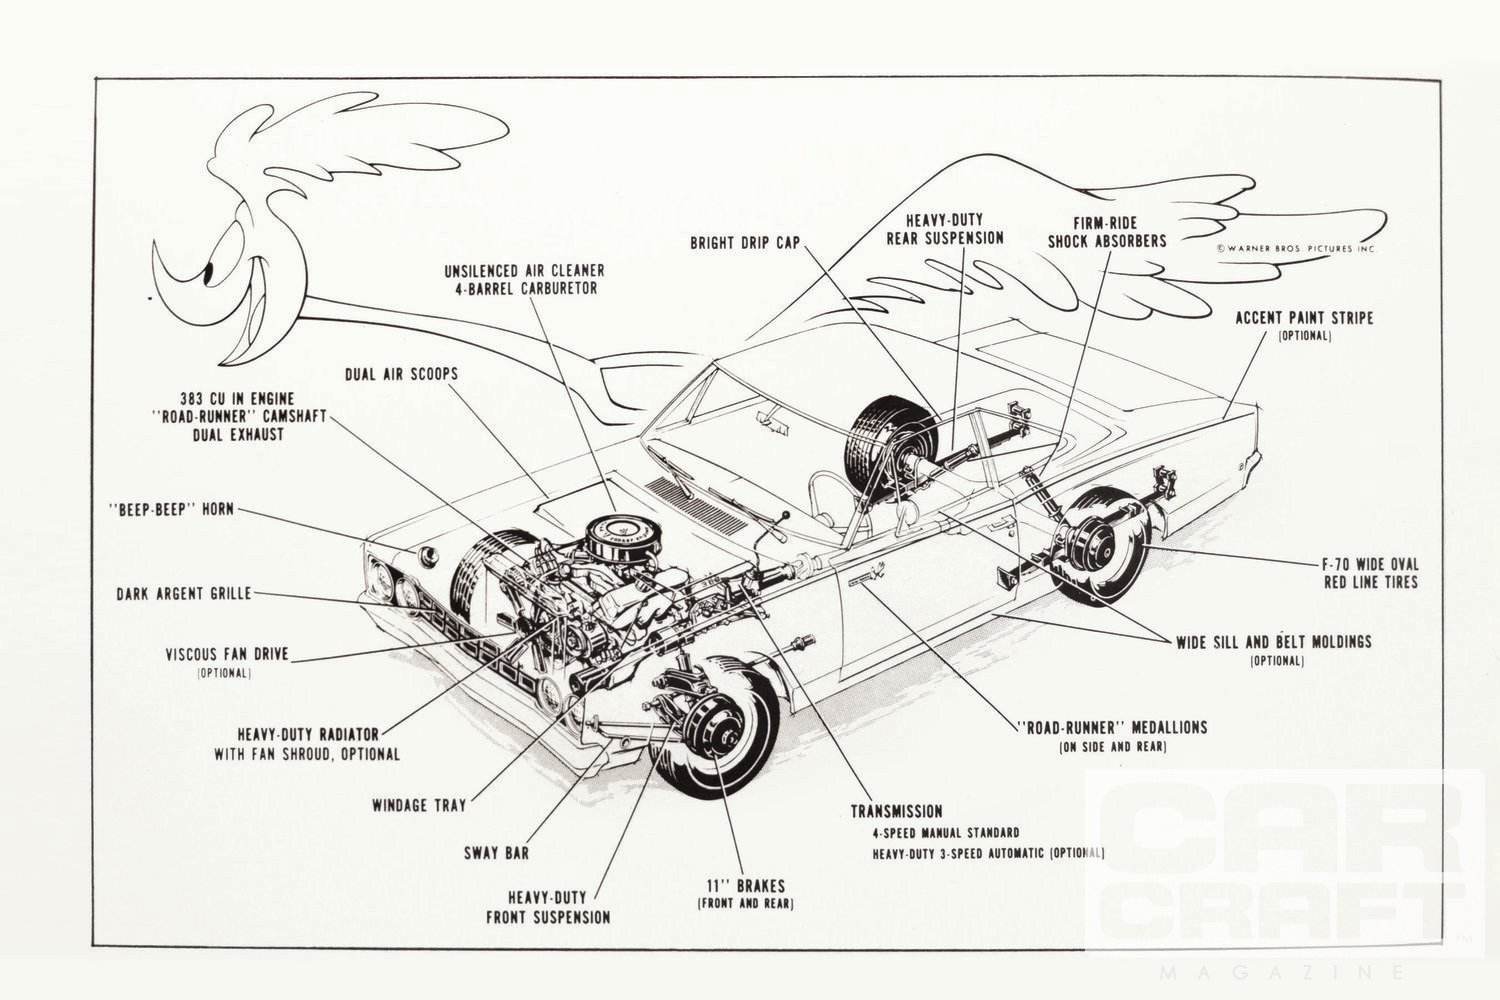 1968 Plymouth Road Runner Wiring Diagram | Wiring Diagram on 70 duster wiring diagram, 70 charger wiring diagram, 70 challenger wiring diagram,